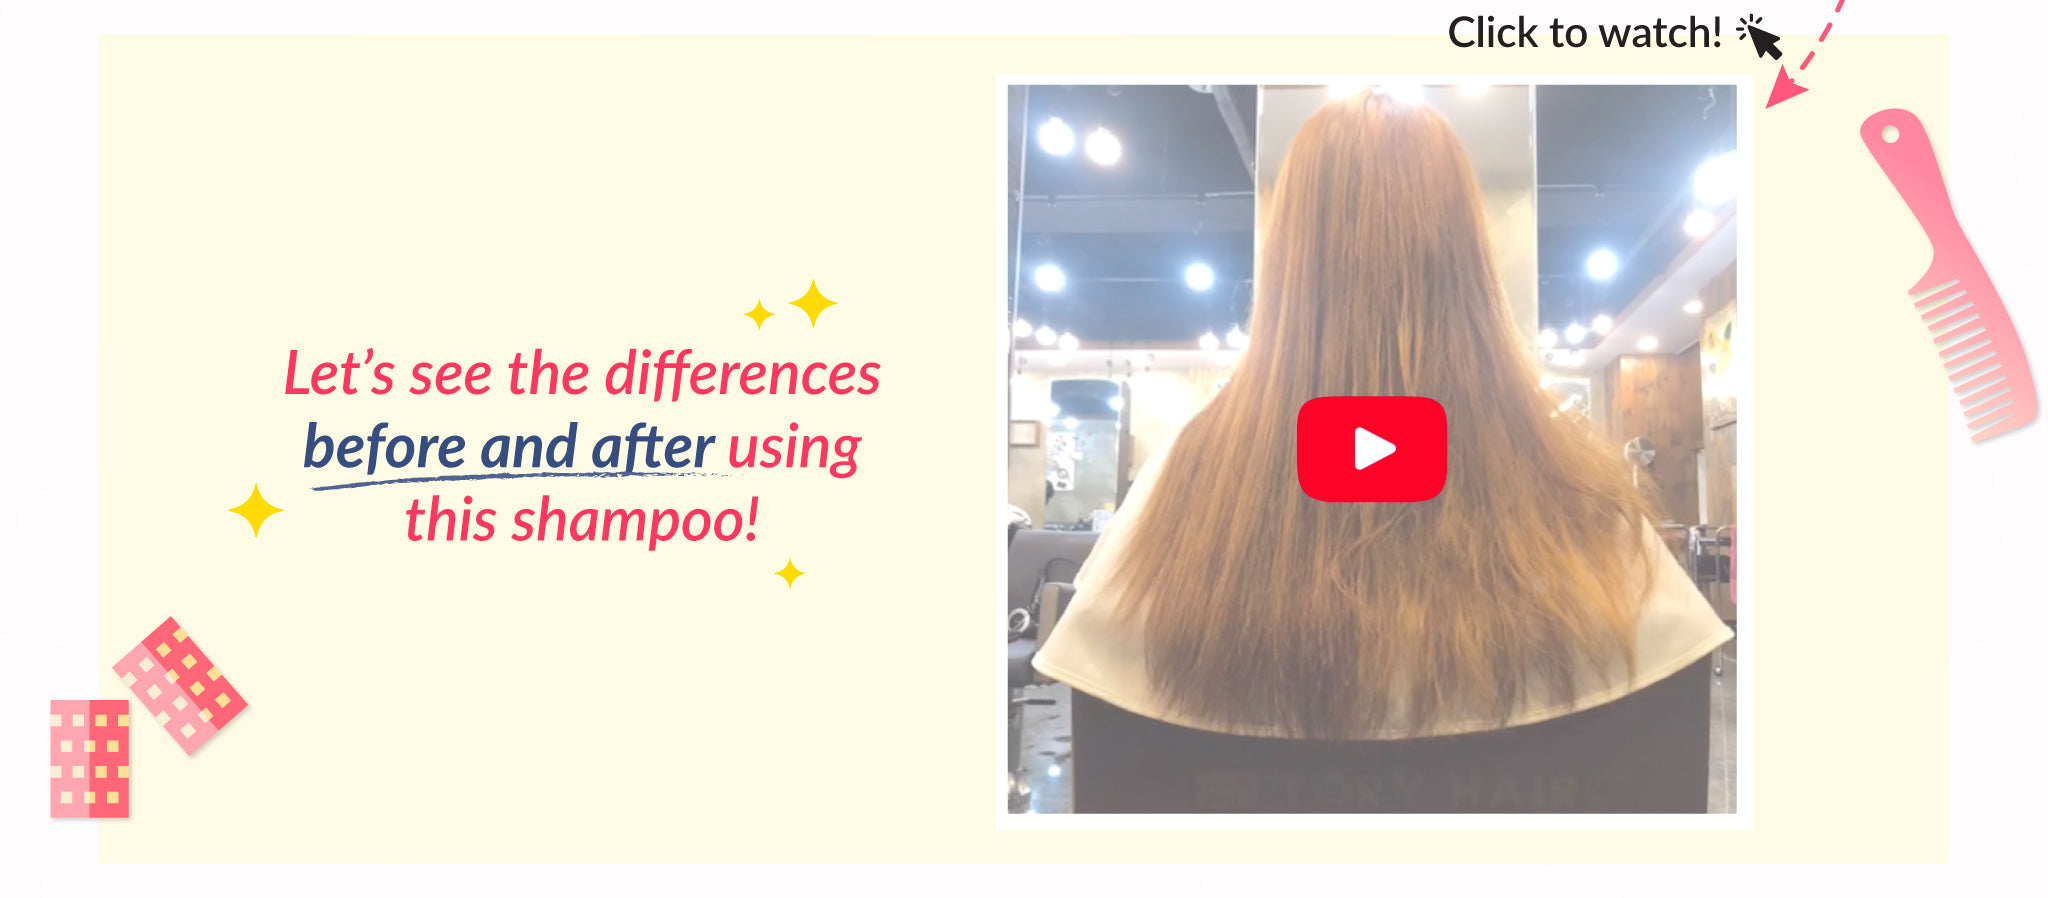 Watch the Shampoo in action here!